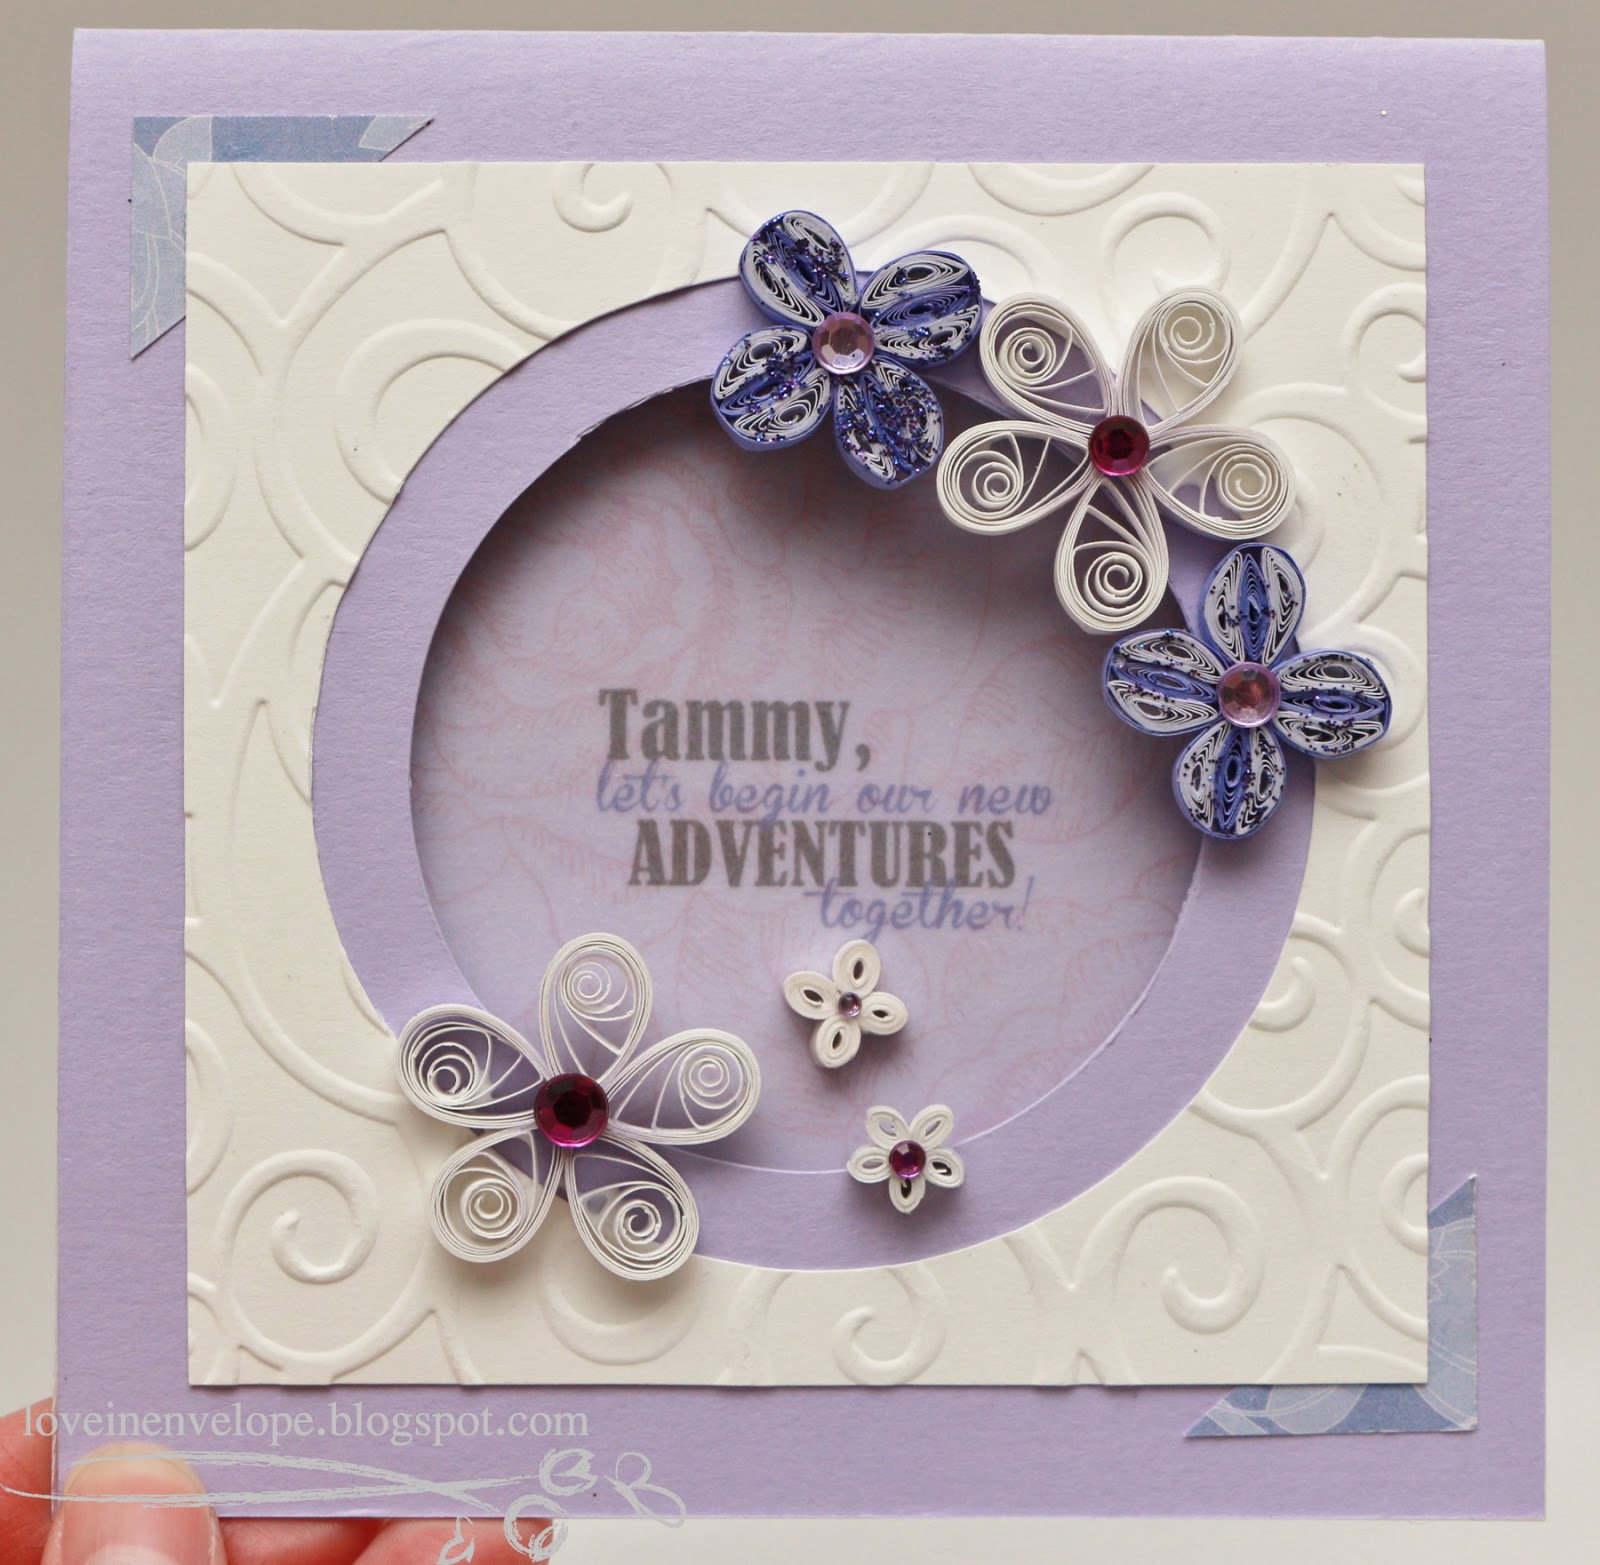 Love in envelope quilling purple and white flowers circle window card quilling purple and white flowers circle window card kristyandbryce Images